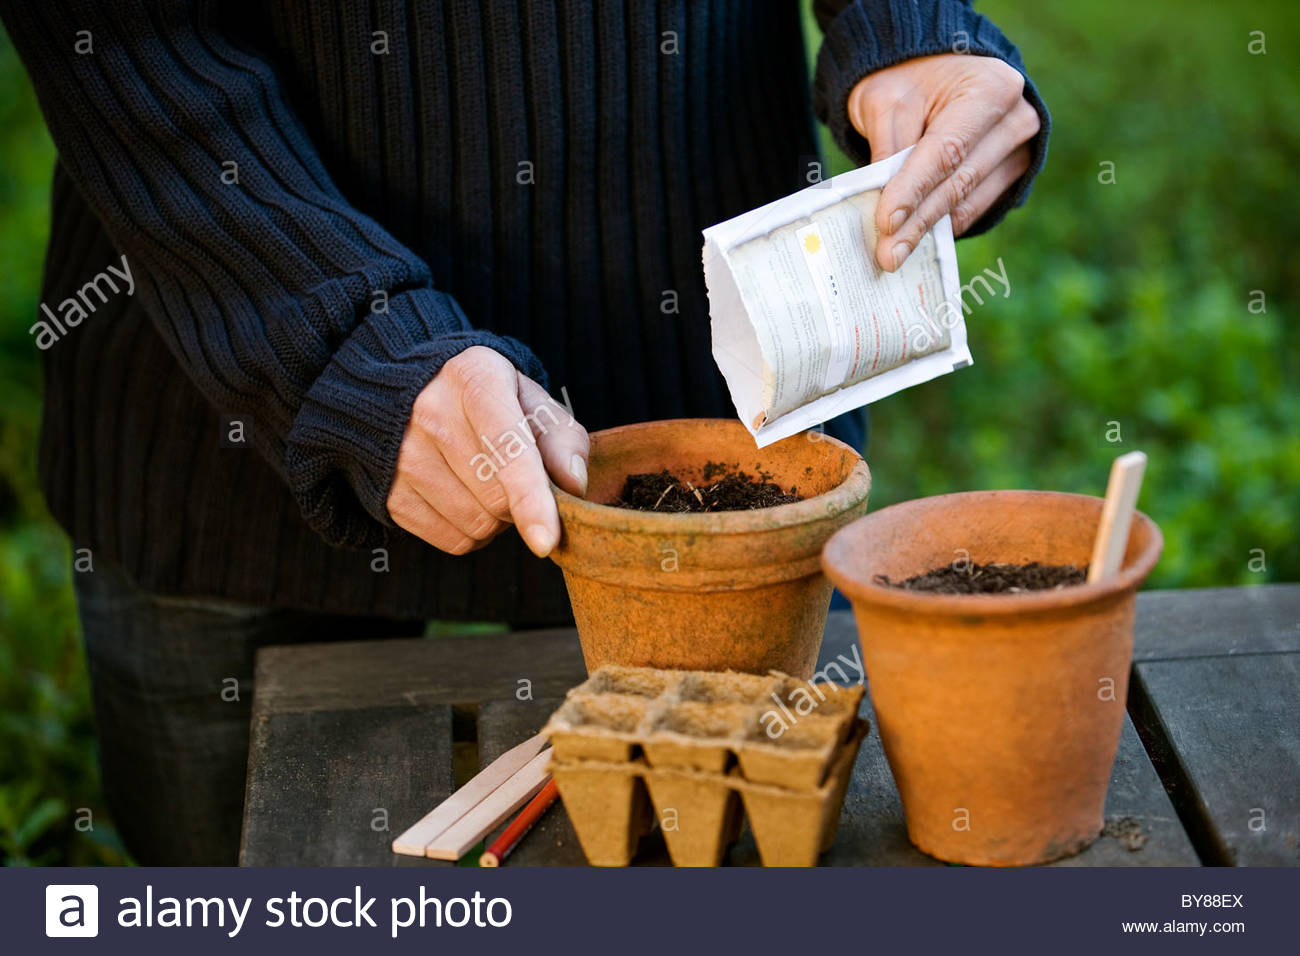 A man planting seeds in a pot - Stock Image